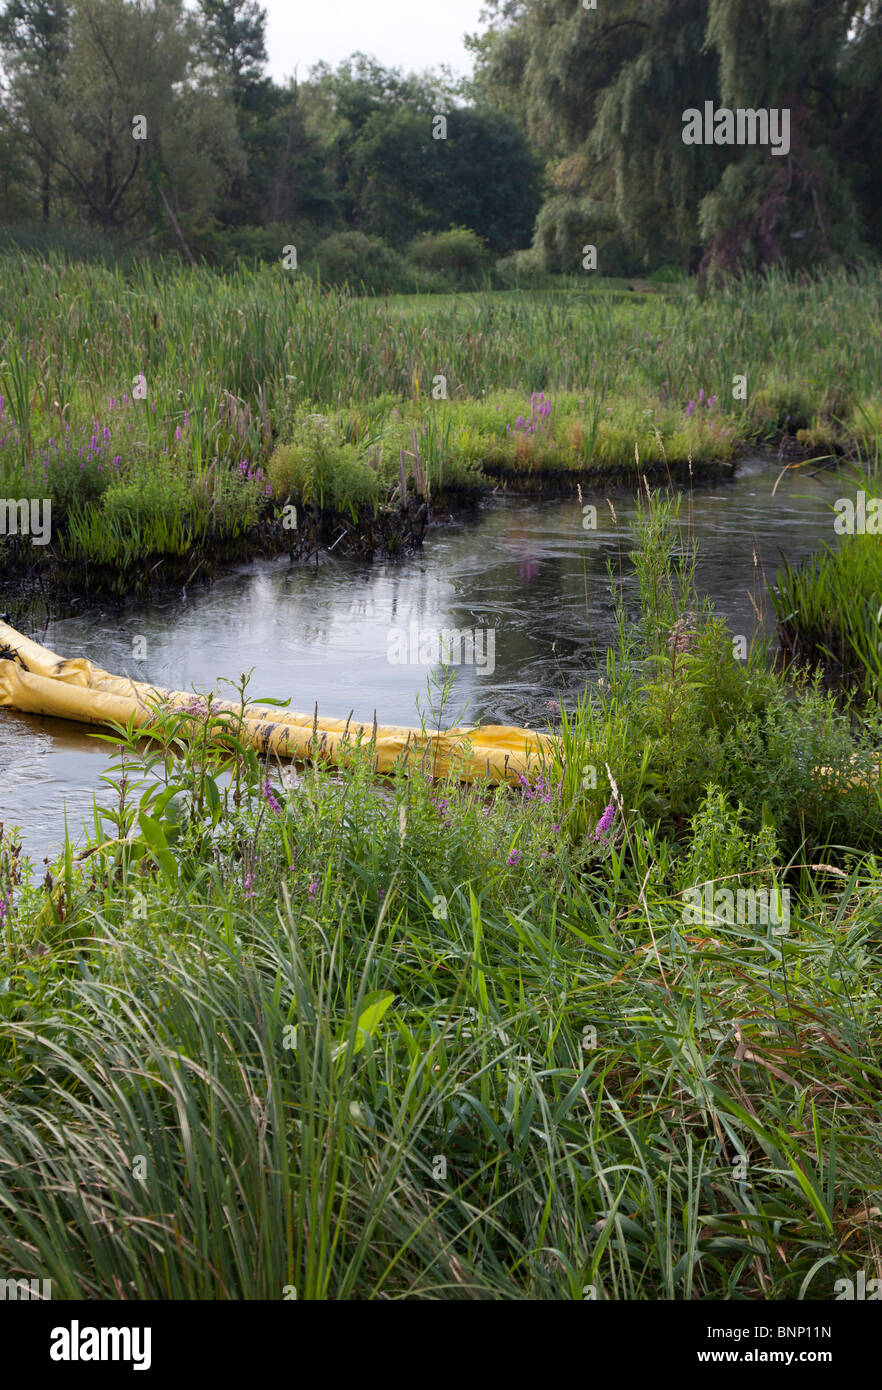 Oil Spill Cleanup - Stock Image